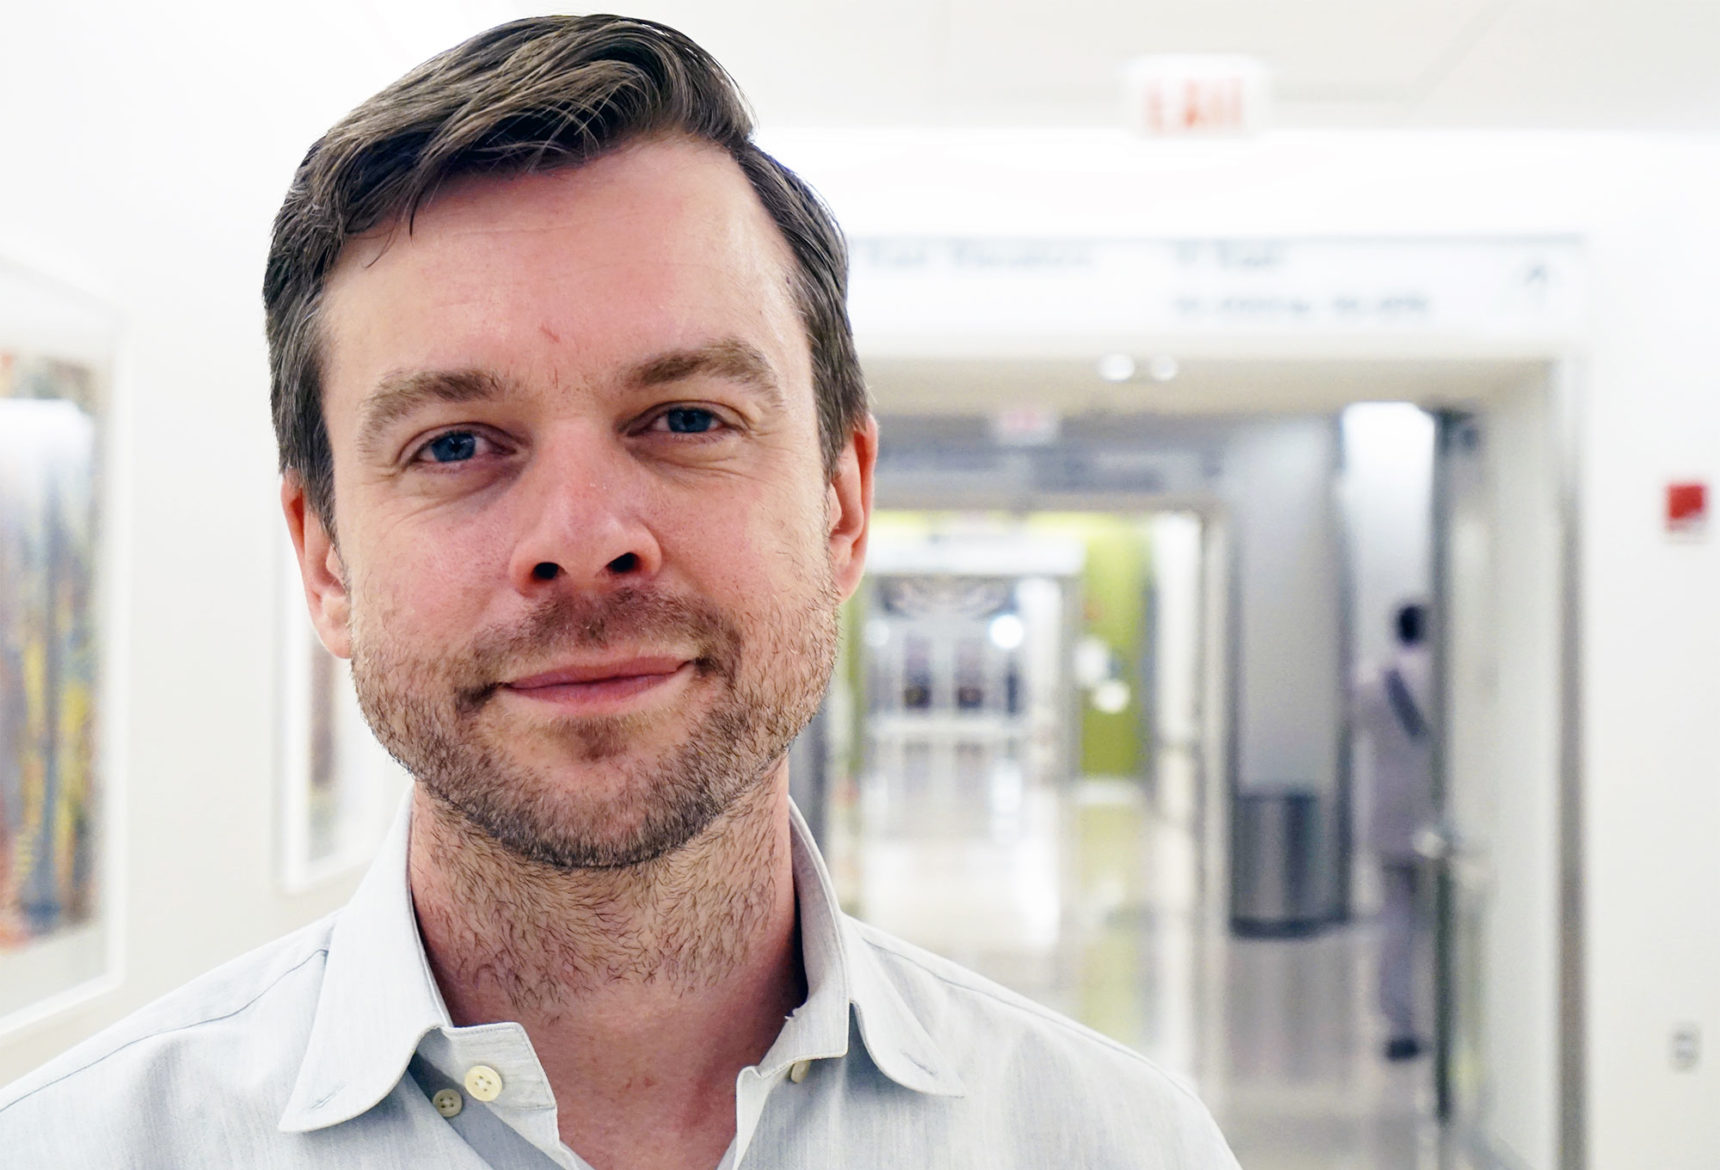 Today's studies of symbiotic bacteria go far beyond simply associating them with their hosts' health or sickness, according to Jack Gilbert, a microbiome researcher at the University of Chicago.